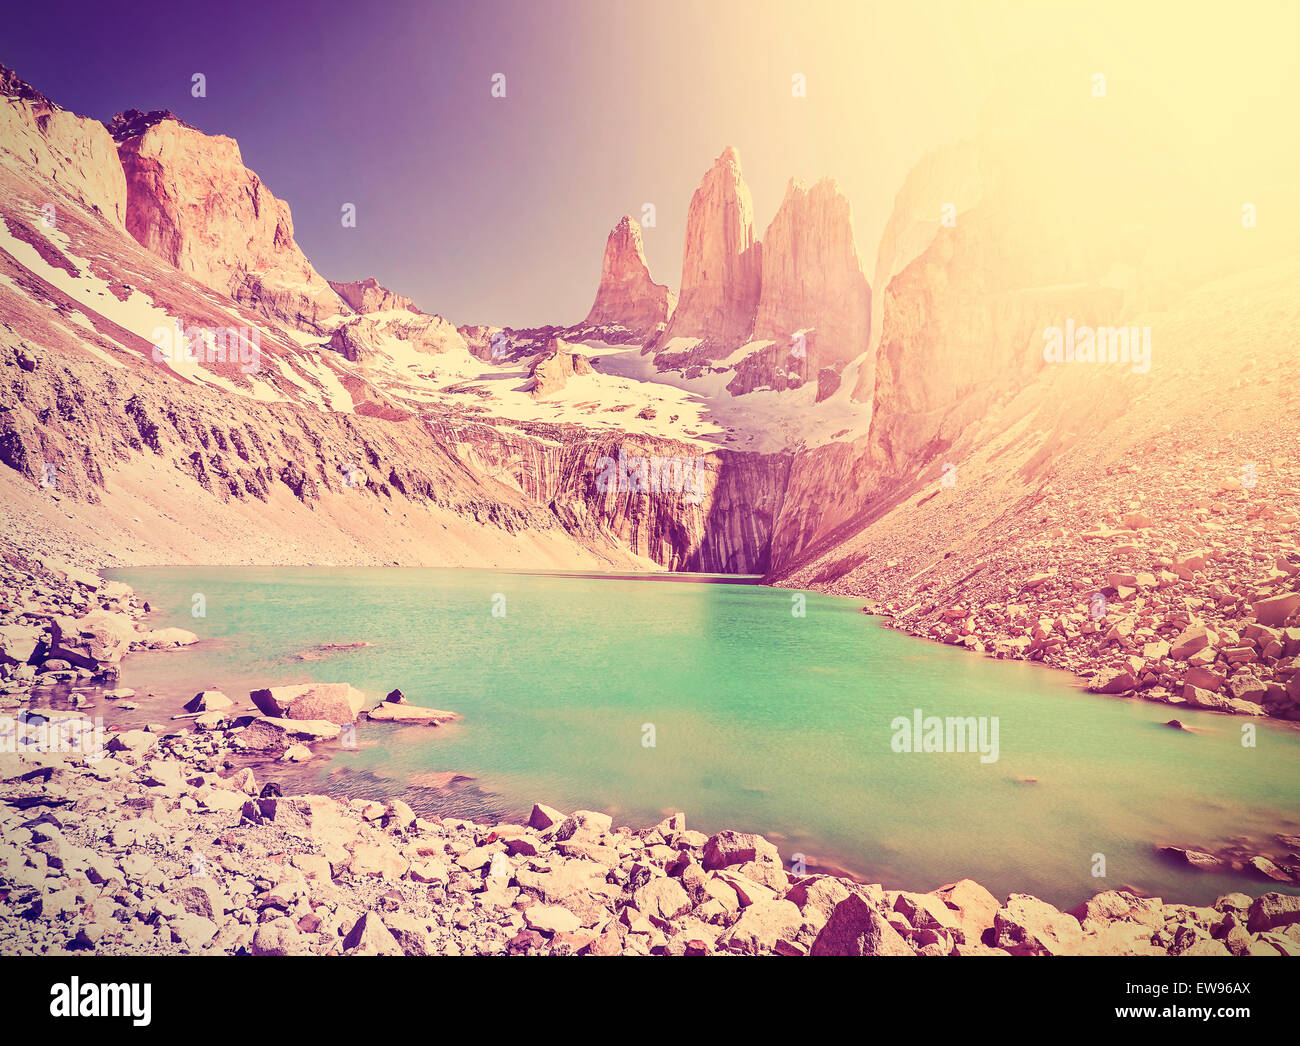 Vintage instagram toned mountains, Torres del Paine National Park, Patagonia, Chile. - Stock Image